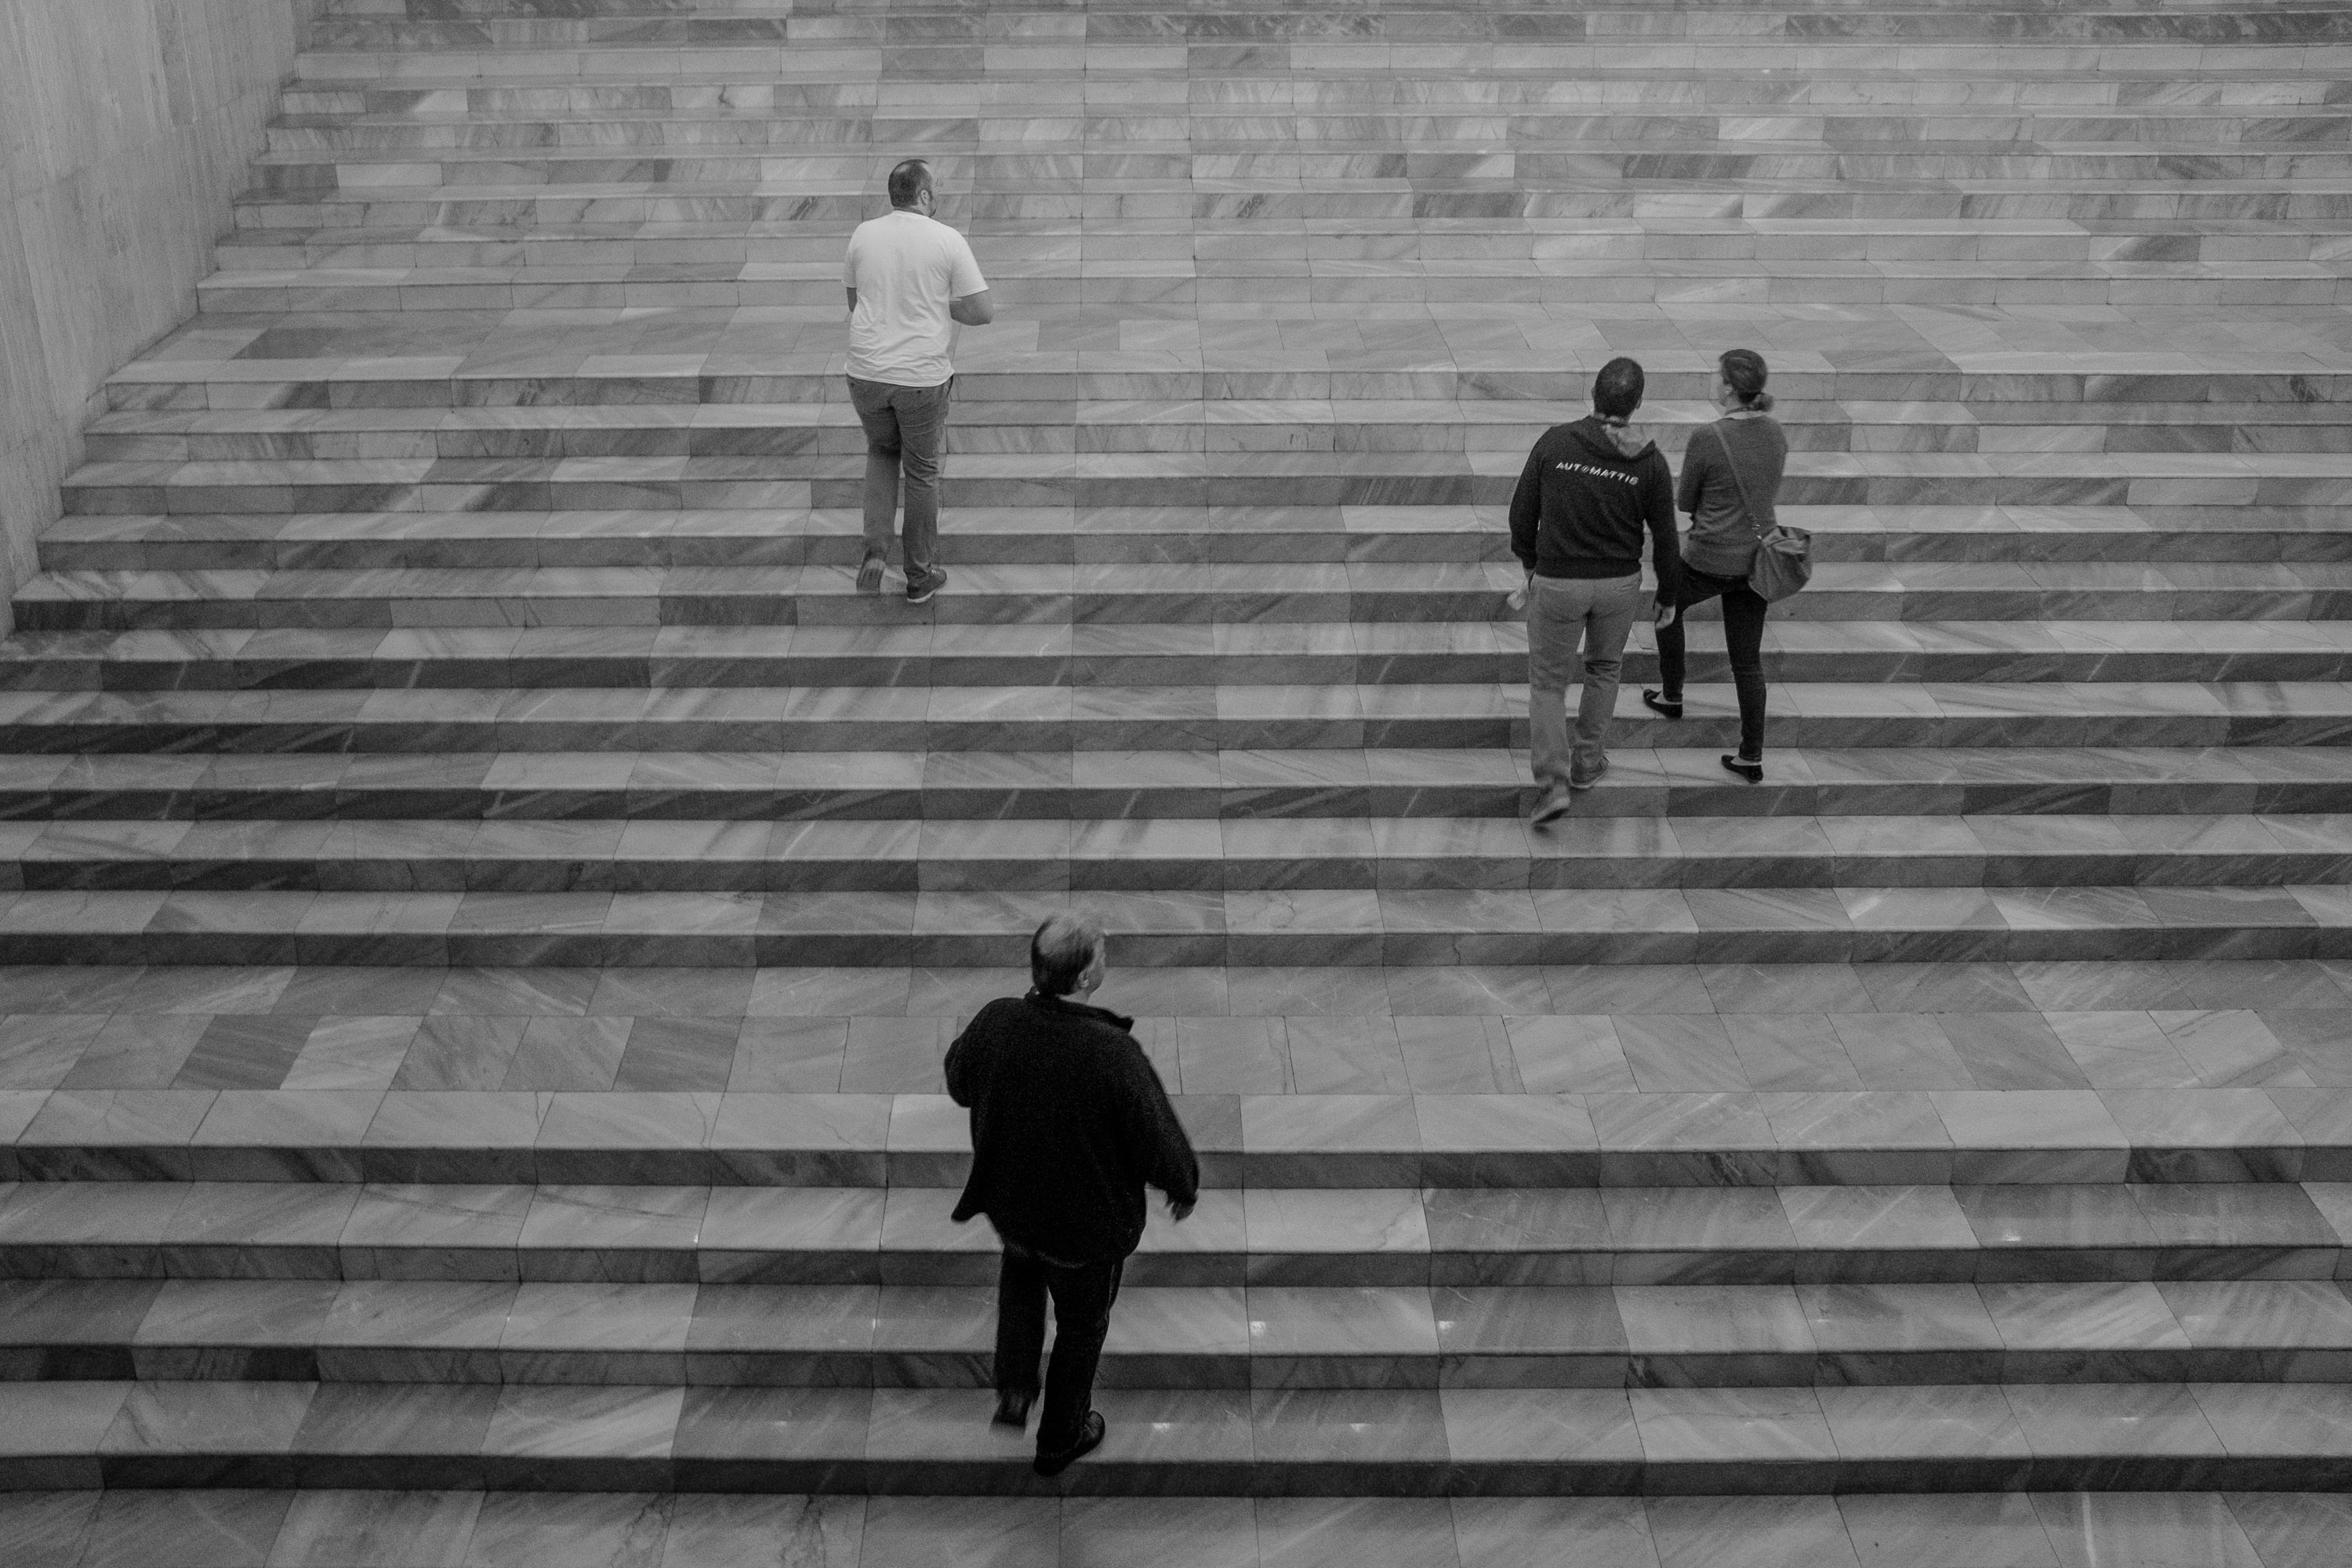 Attendees climbing the steps to the main auditorum in the National Palace of Culture in Sofia, Bulgaria.